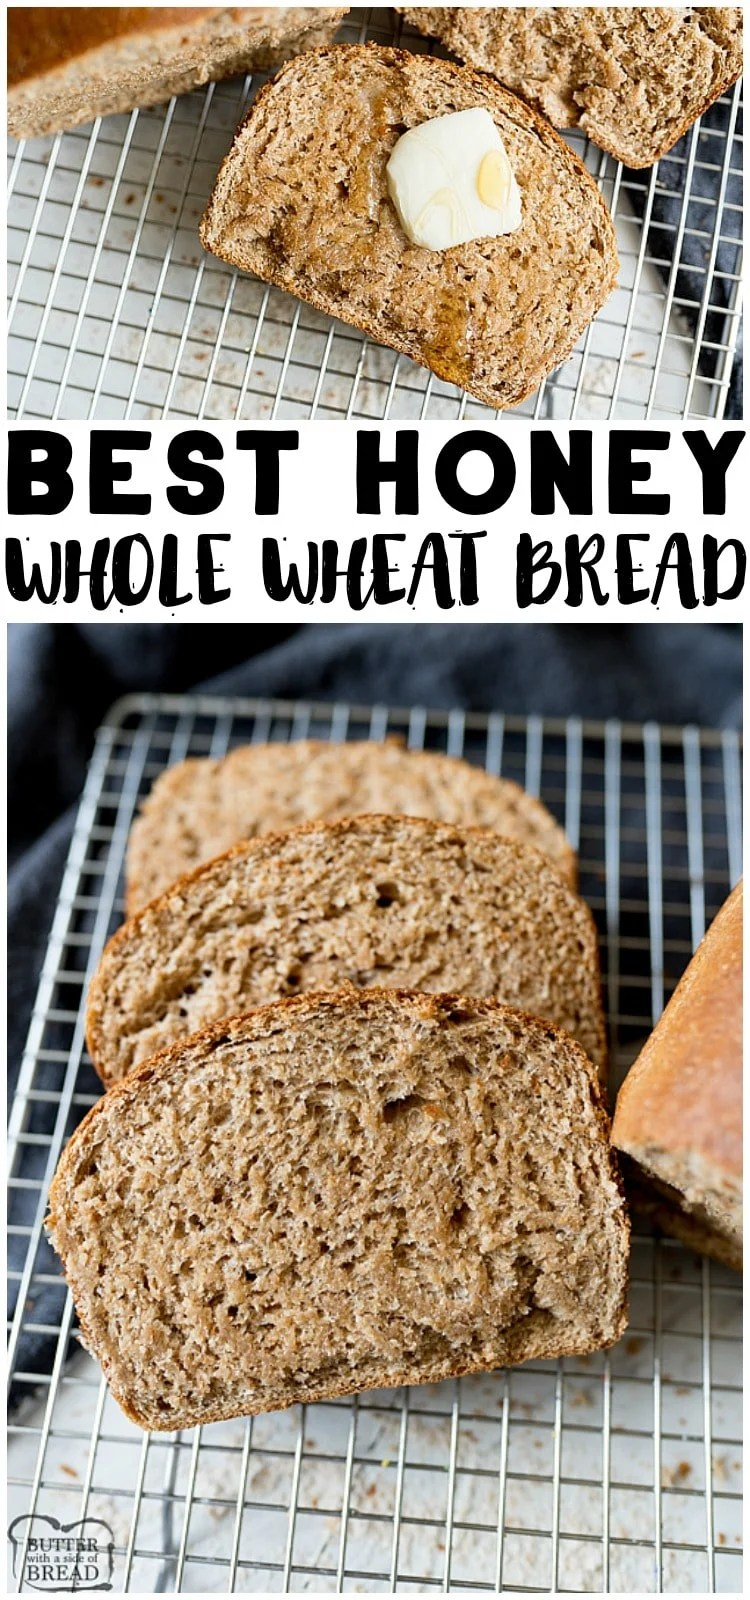 Honey Whole Wheat Bread is a delicious, hearty whole Wheat Bread recipe is perfect for any time of the day and any type of meal. #honeywheat #wholewheat #homemadebread #bread #recipe #baking from Butter With a Side of Bread